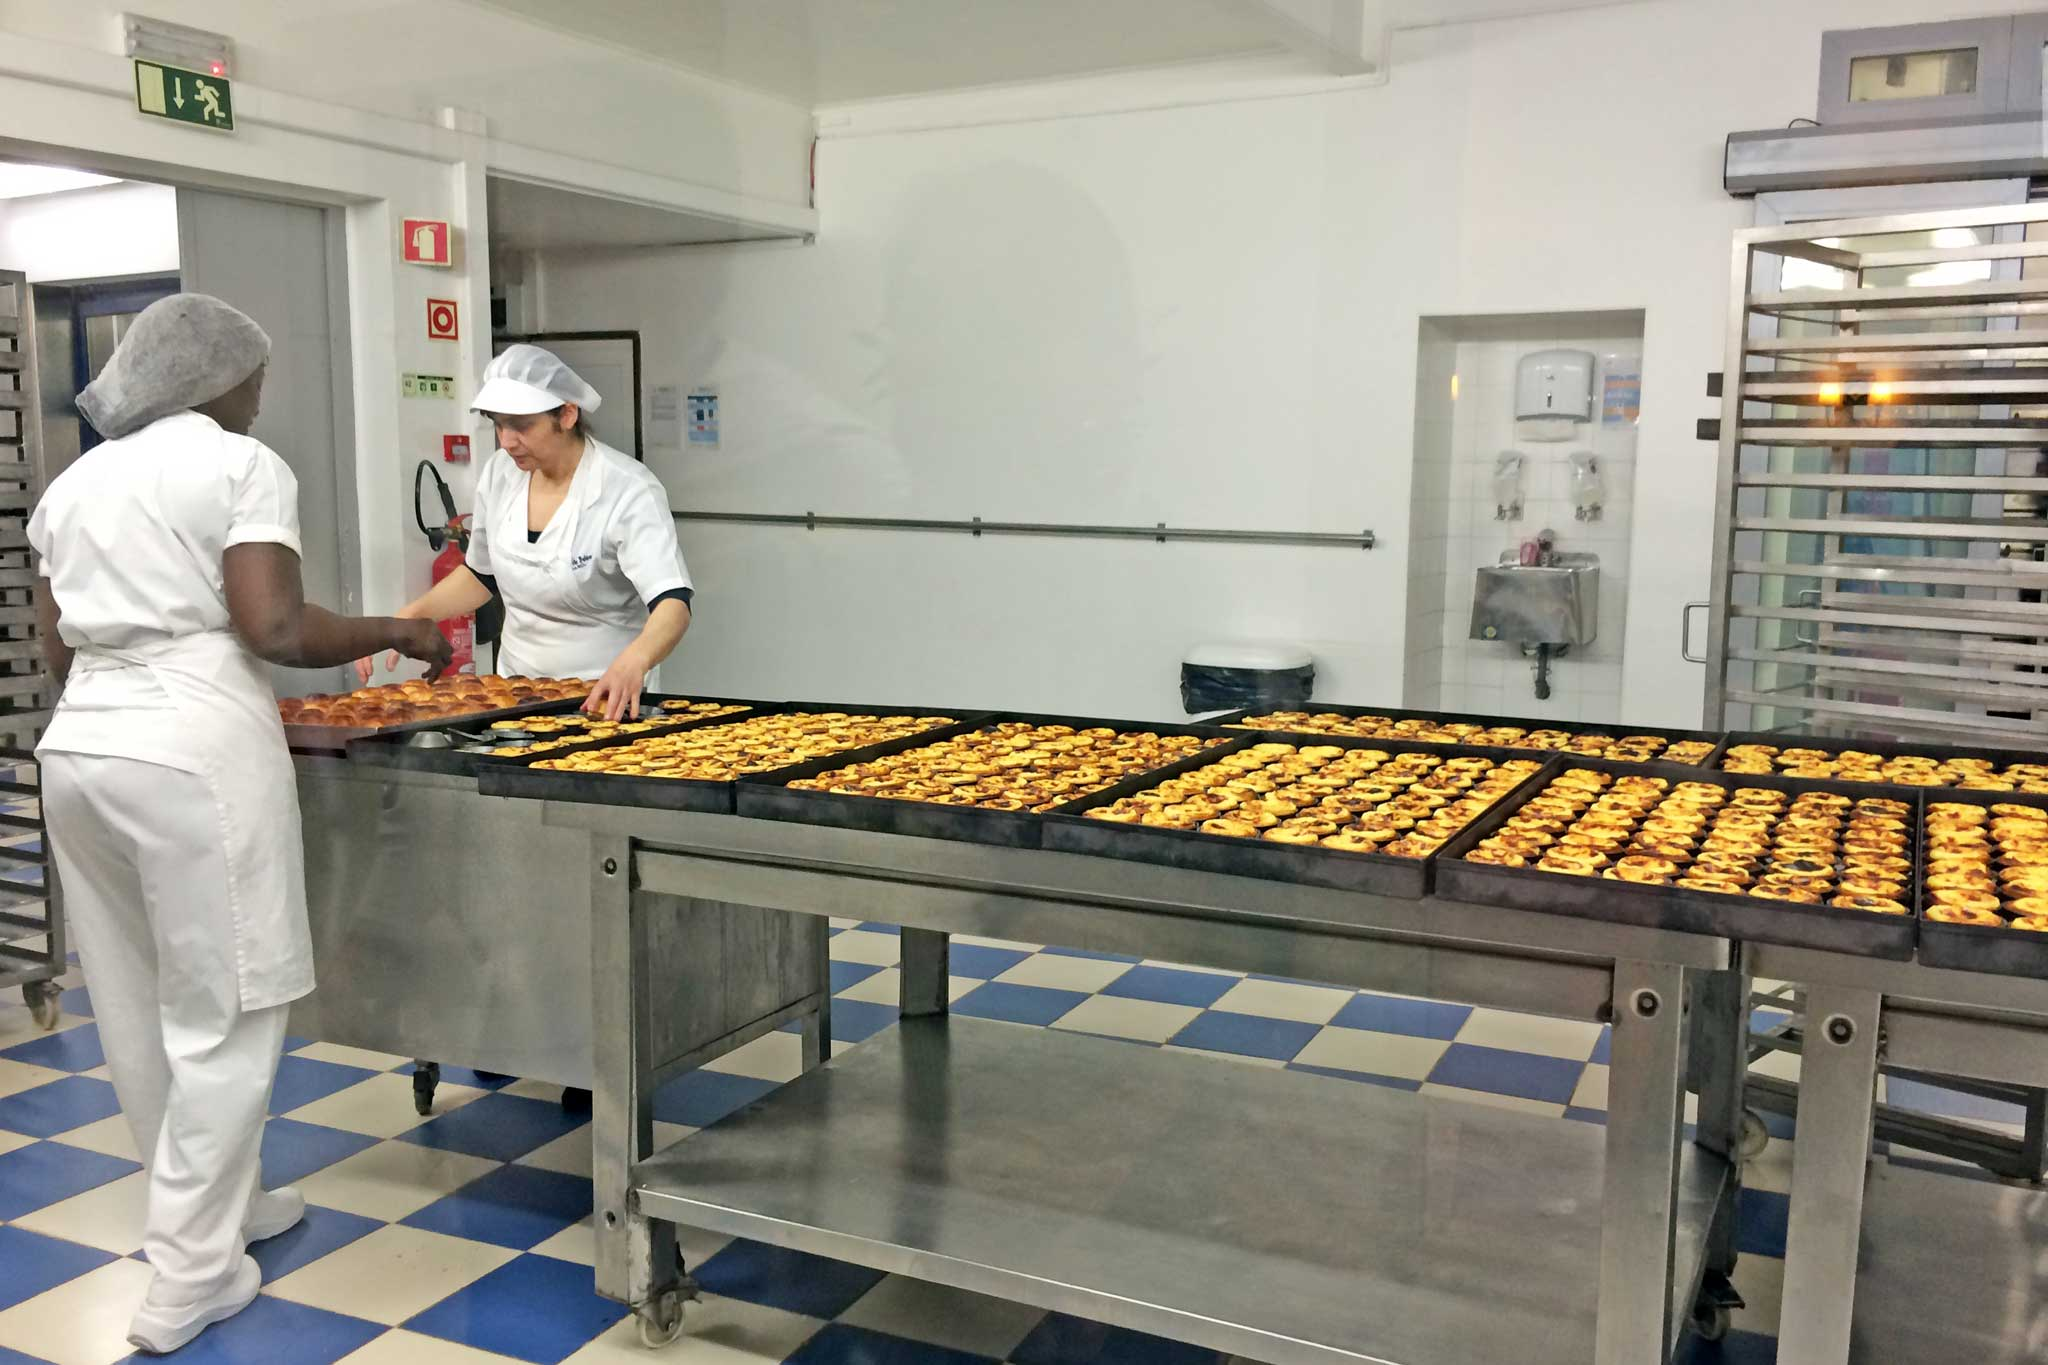 Lisbona_Belem_Pasteis